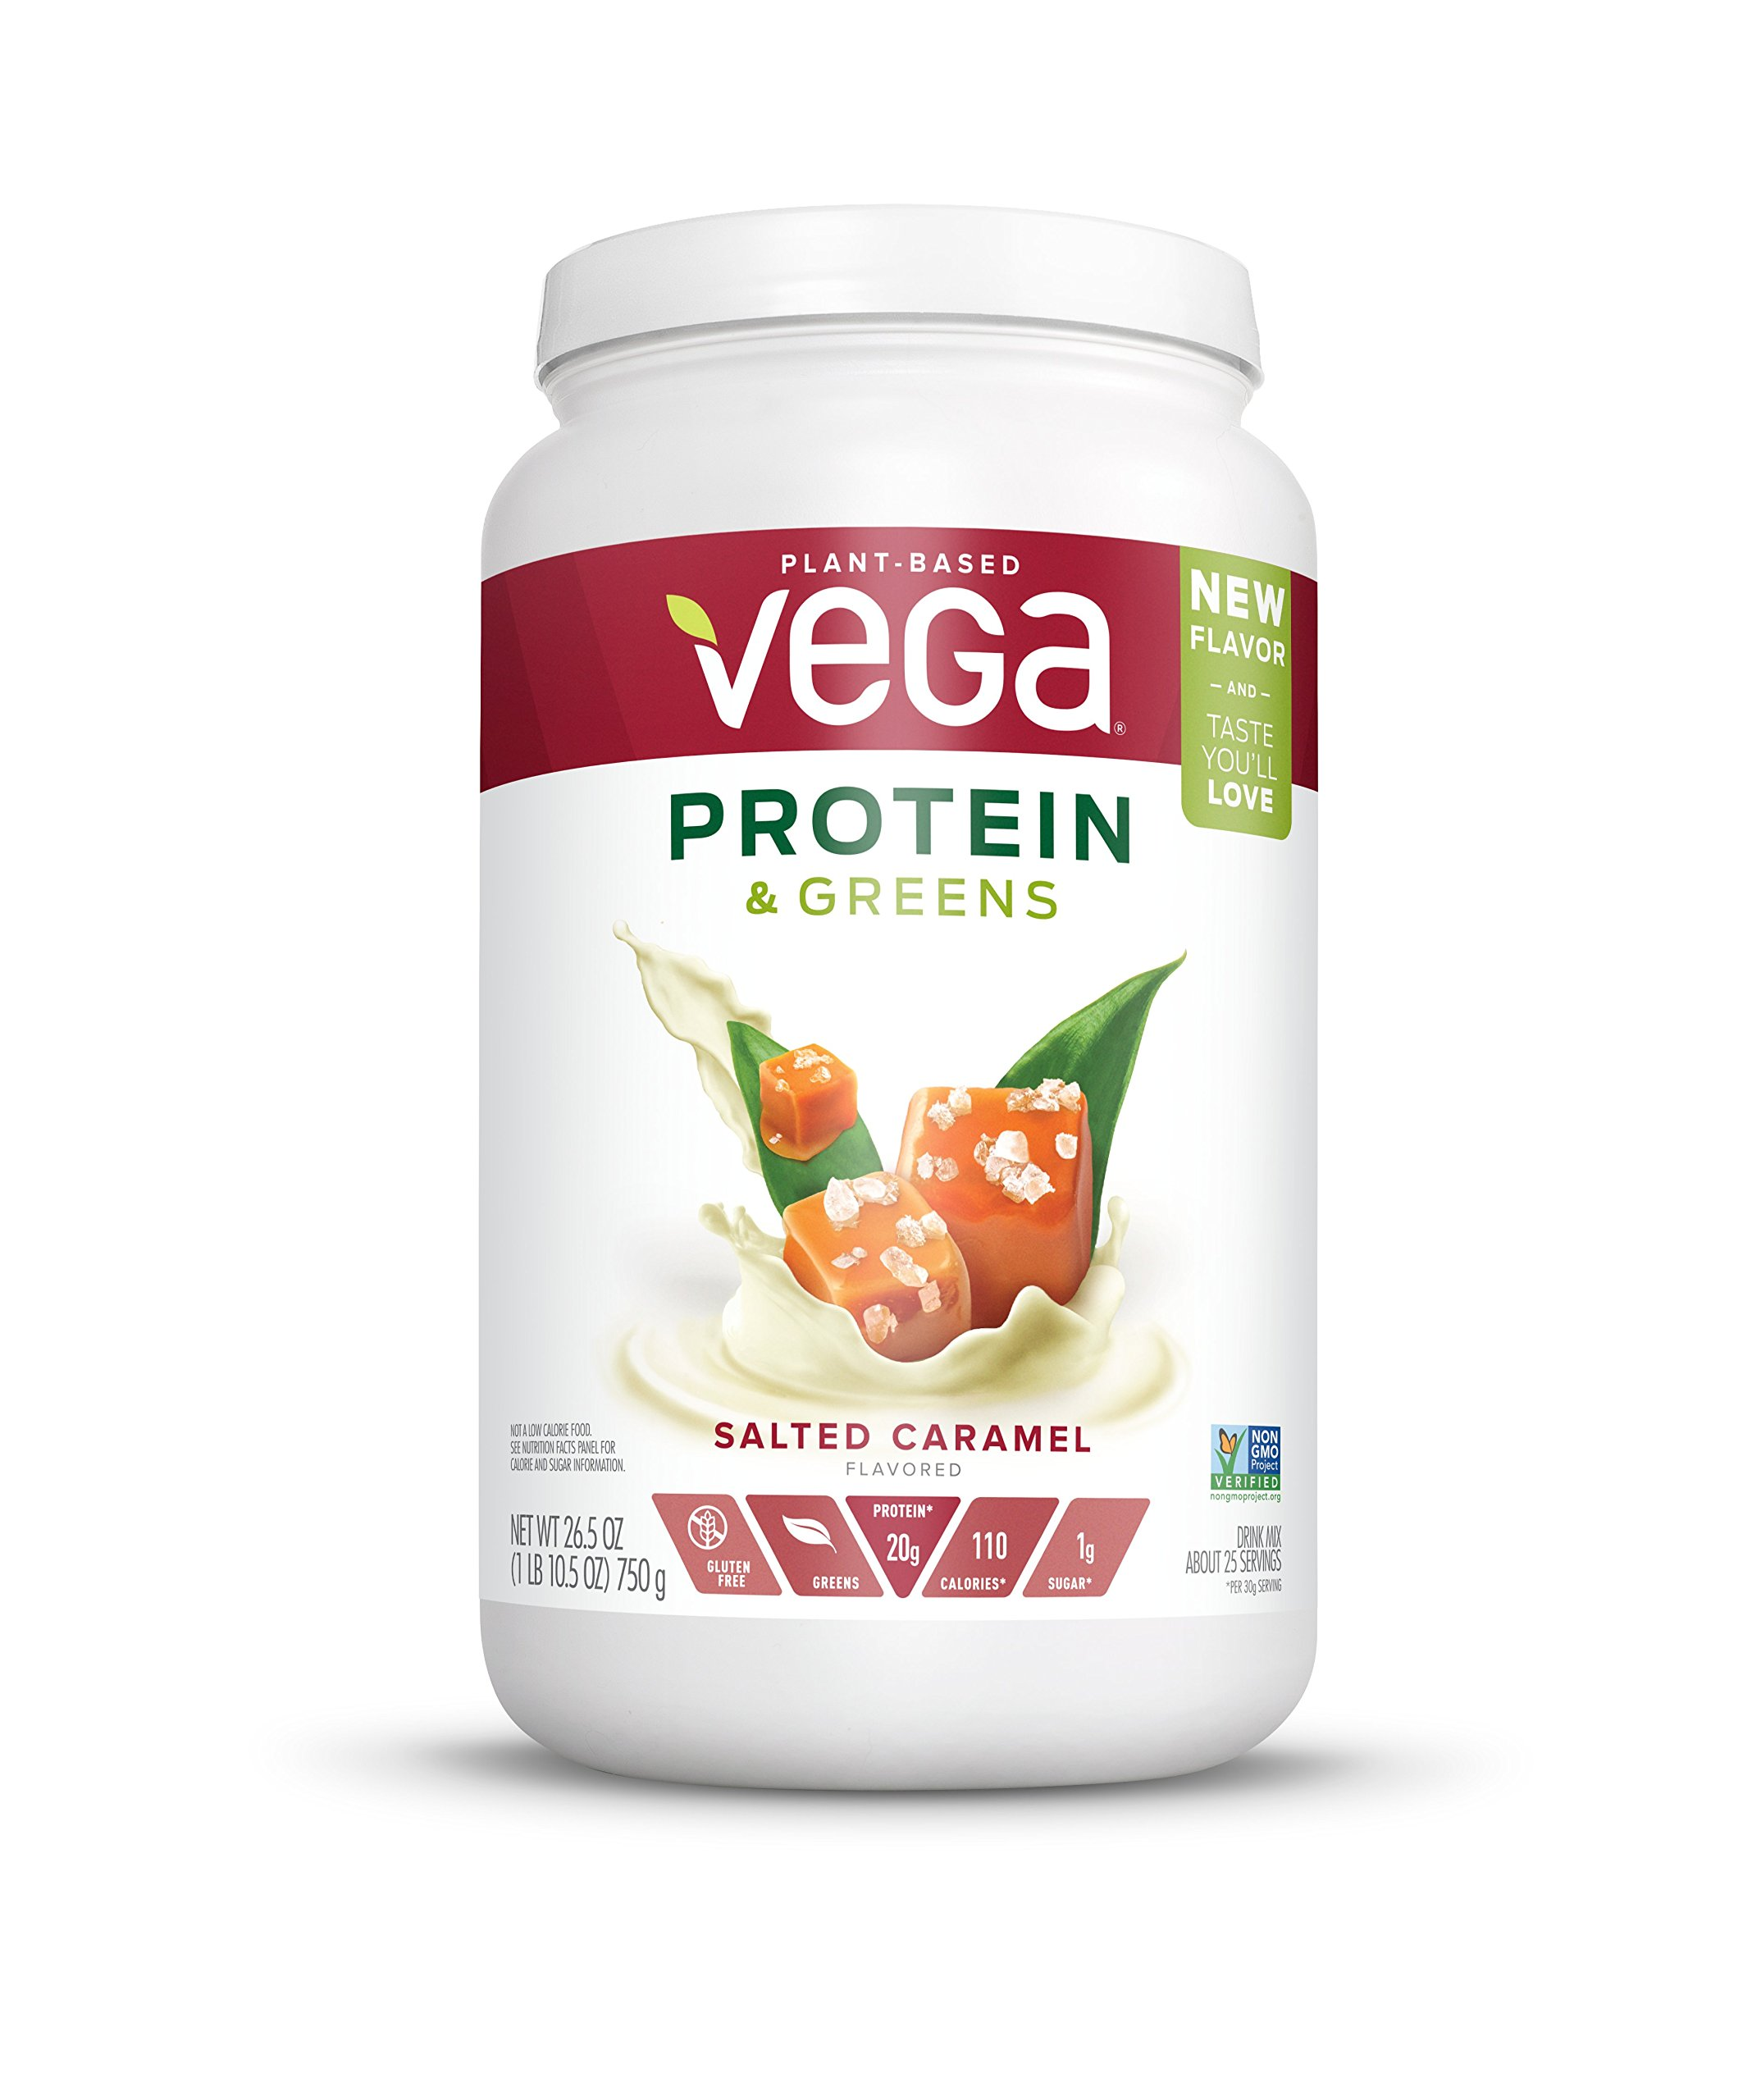 Vega Protein & Greens Salted Caramel (25 Servings, 26.5 oz) - Plant Based Protein Powder, Gluten Free, Non Dairy, Vegan, Non Soy, Non GMO - (Packaging may vary)